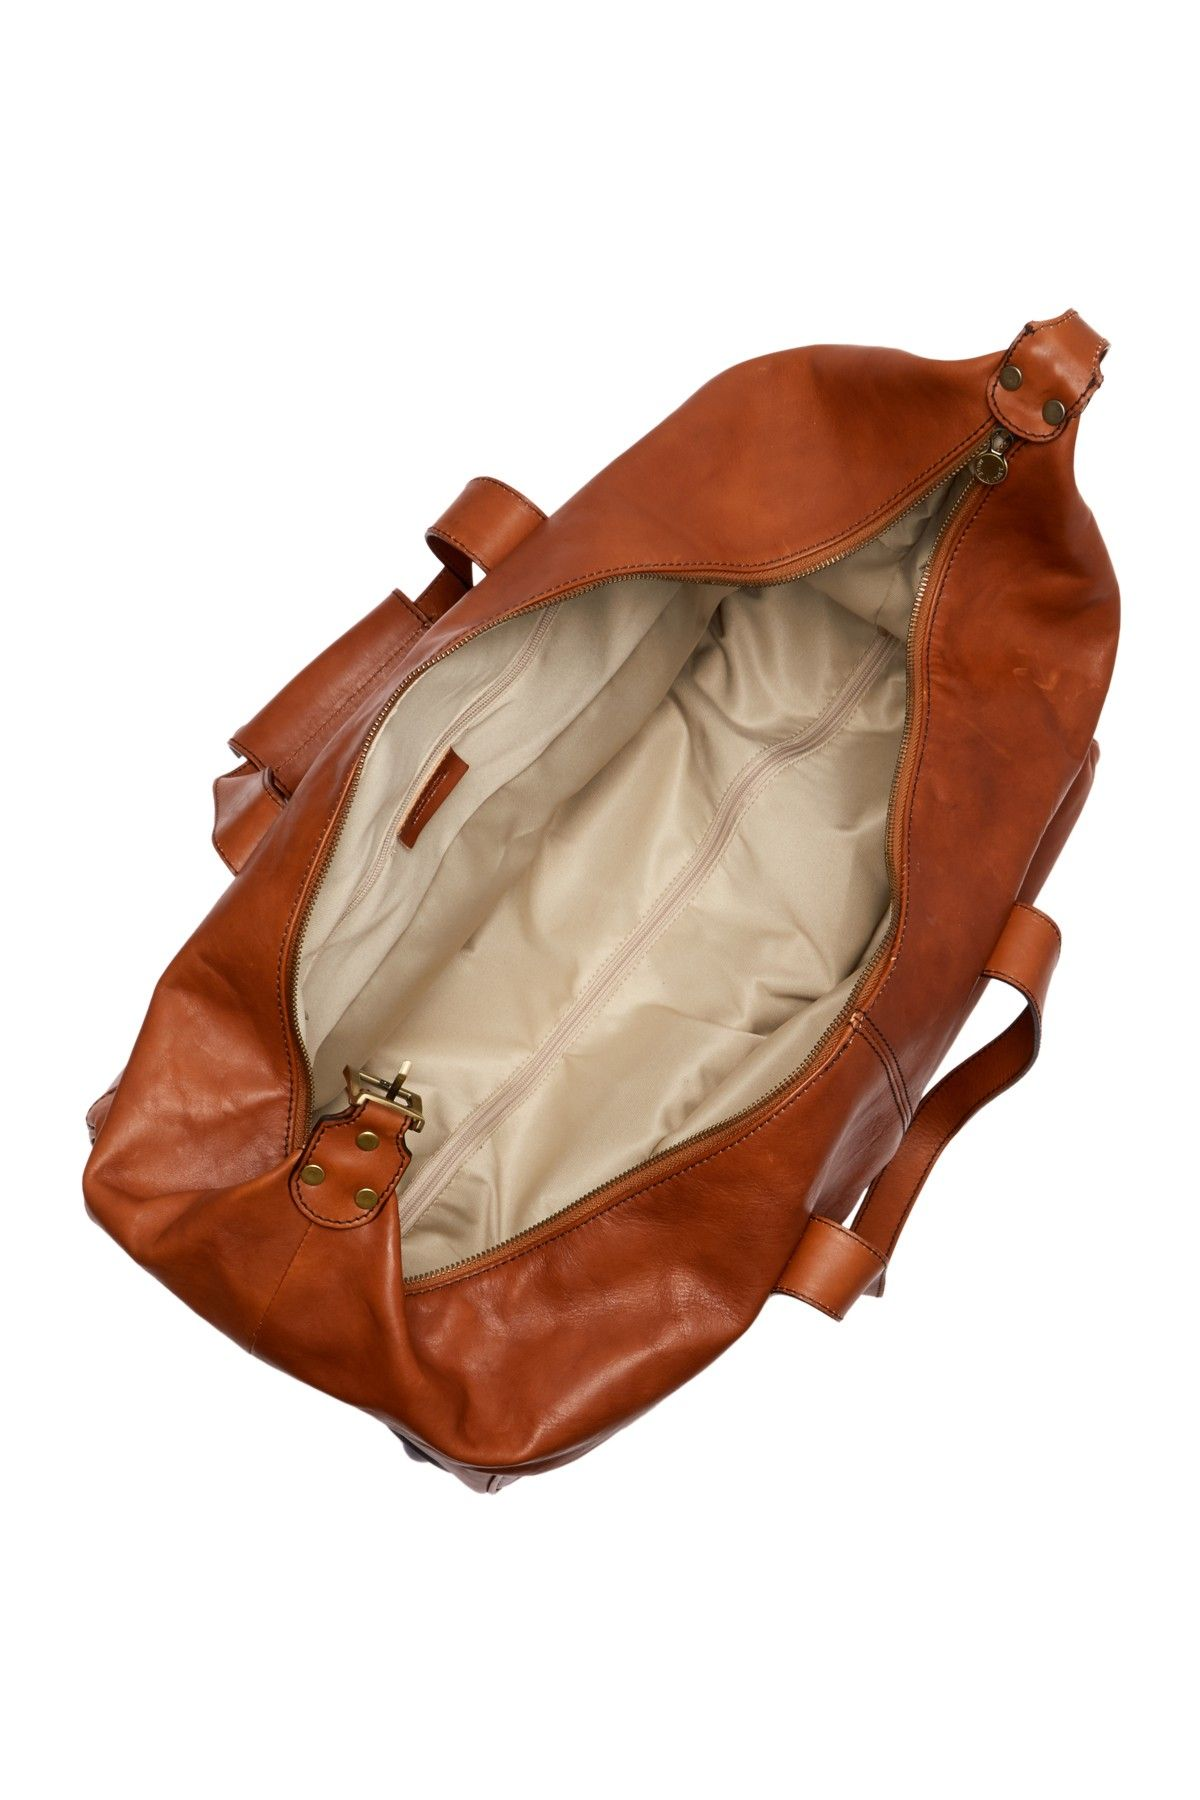 cfba35440c Cosimo Rolling Leather Duffel Bag by Persaman New York on  nordstrom rack